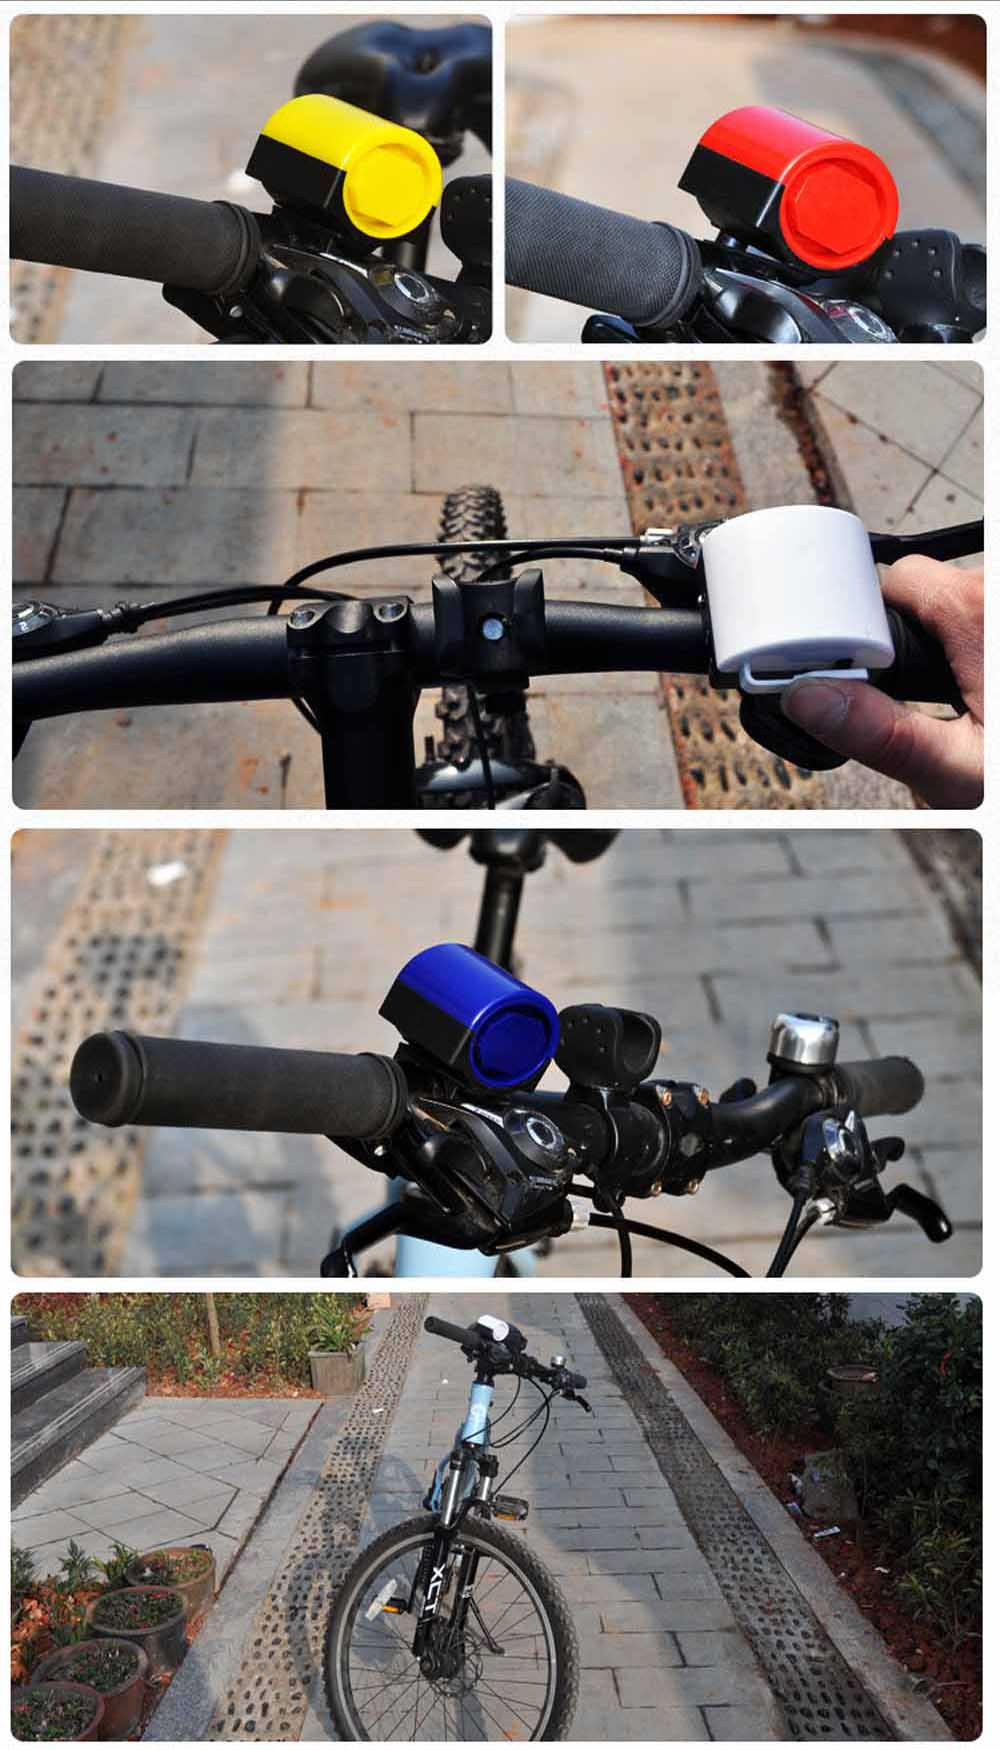 New Arrival Safety Multi-color Popular Electric Bicycle Bell with Promotion